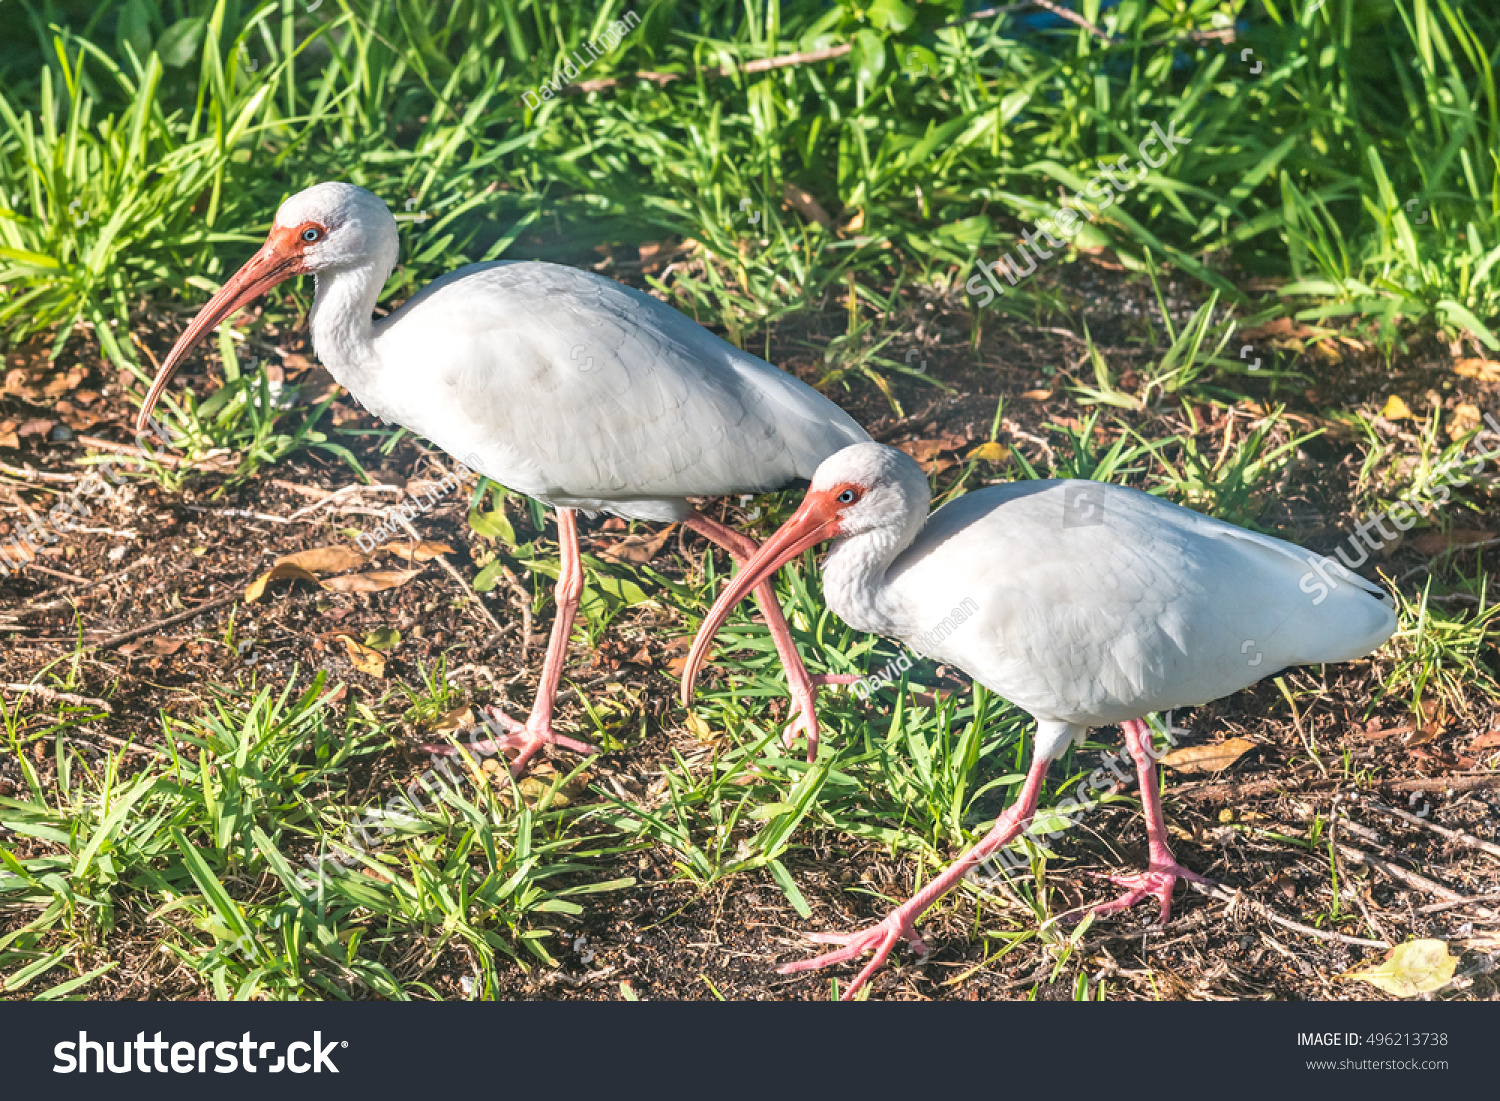 The American White Ibis (Eudocimus albus) has a very long beak.  They range from Baja California, east through the Gulf states.  They are common in the Florida keys, including this pair in Key West.